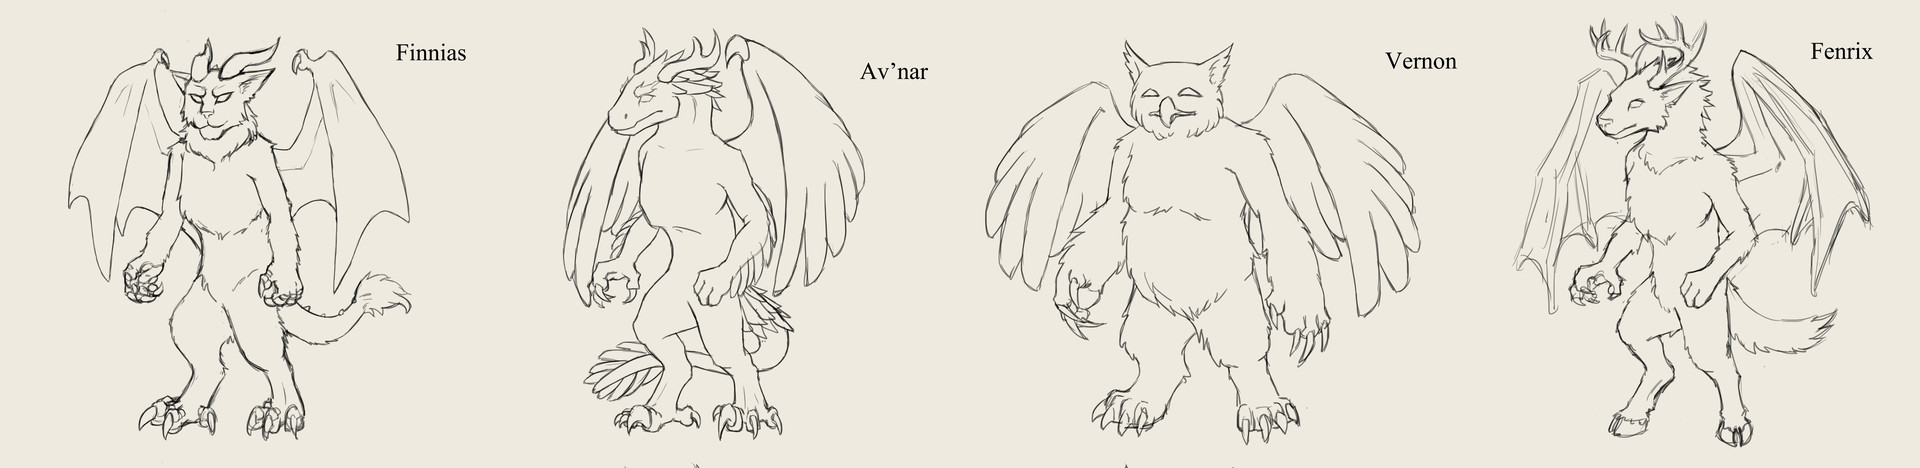 Cordelia wolf familiars concepts2